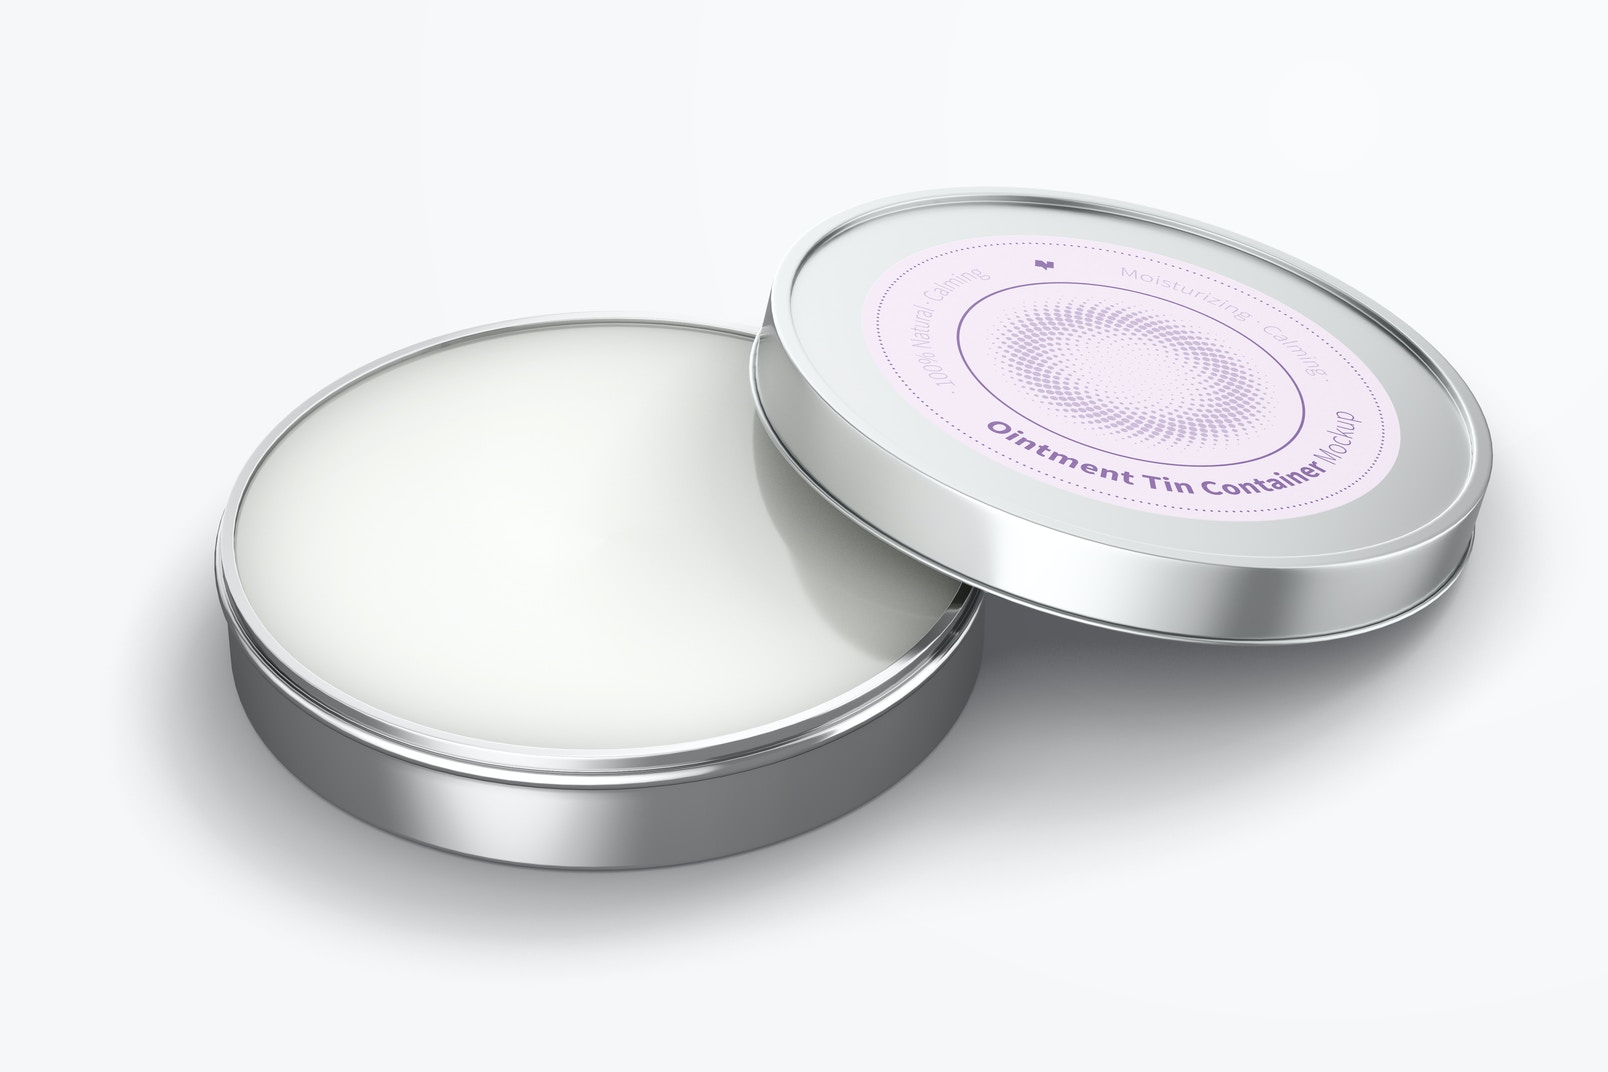 Ointment Tin Container Mockup, Opened